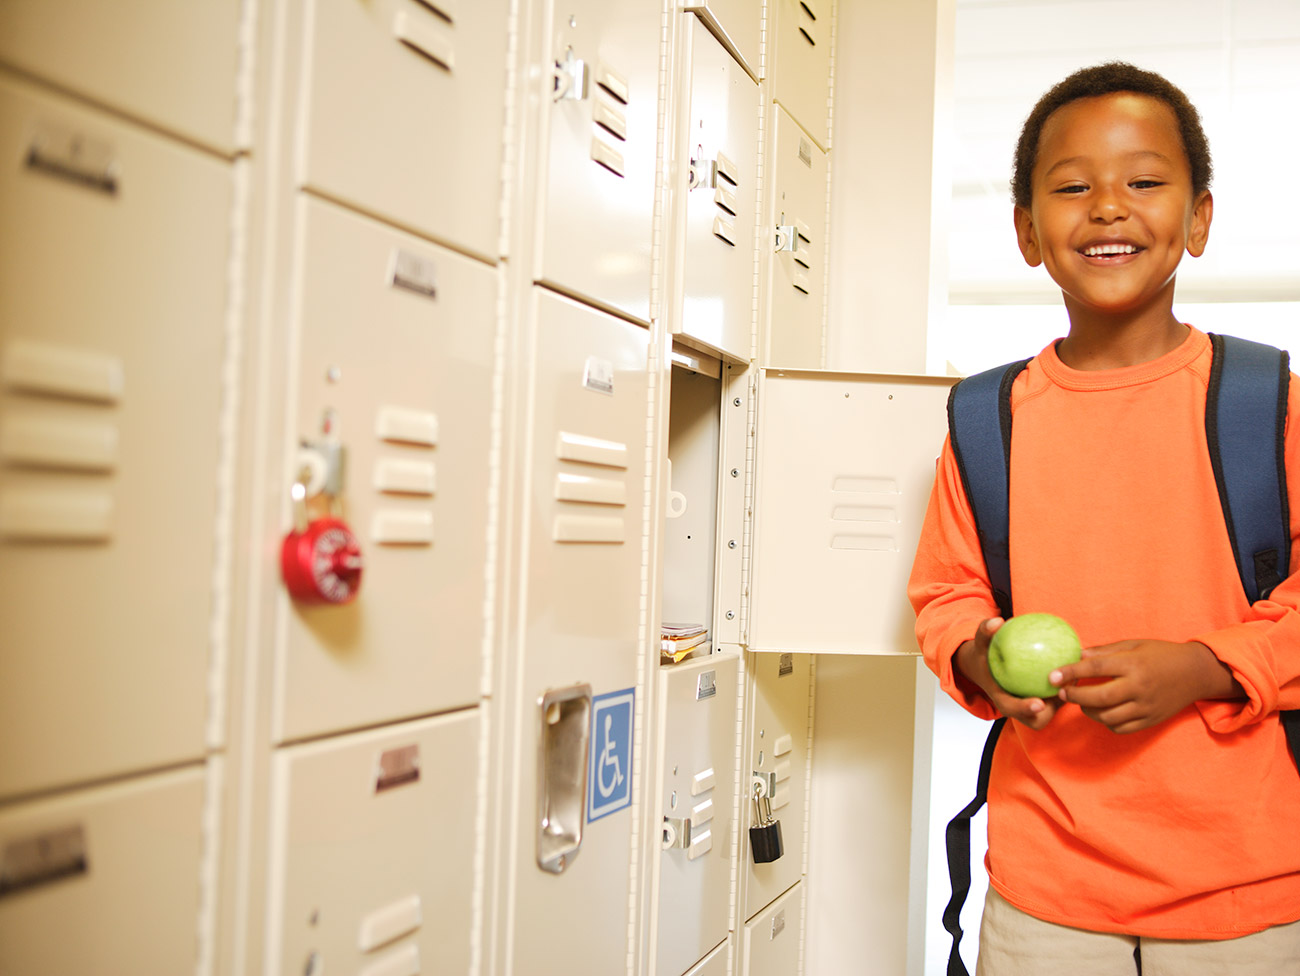 Smiling boy holding an apple next to school lockers.